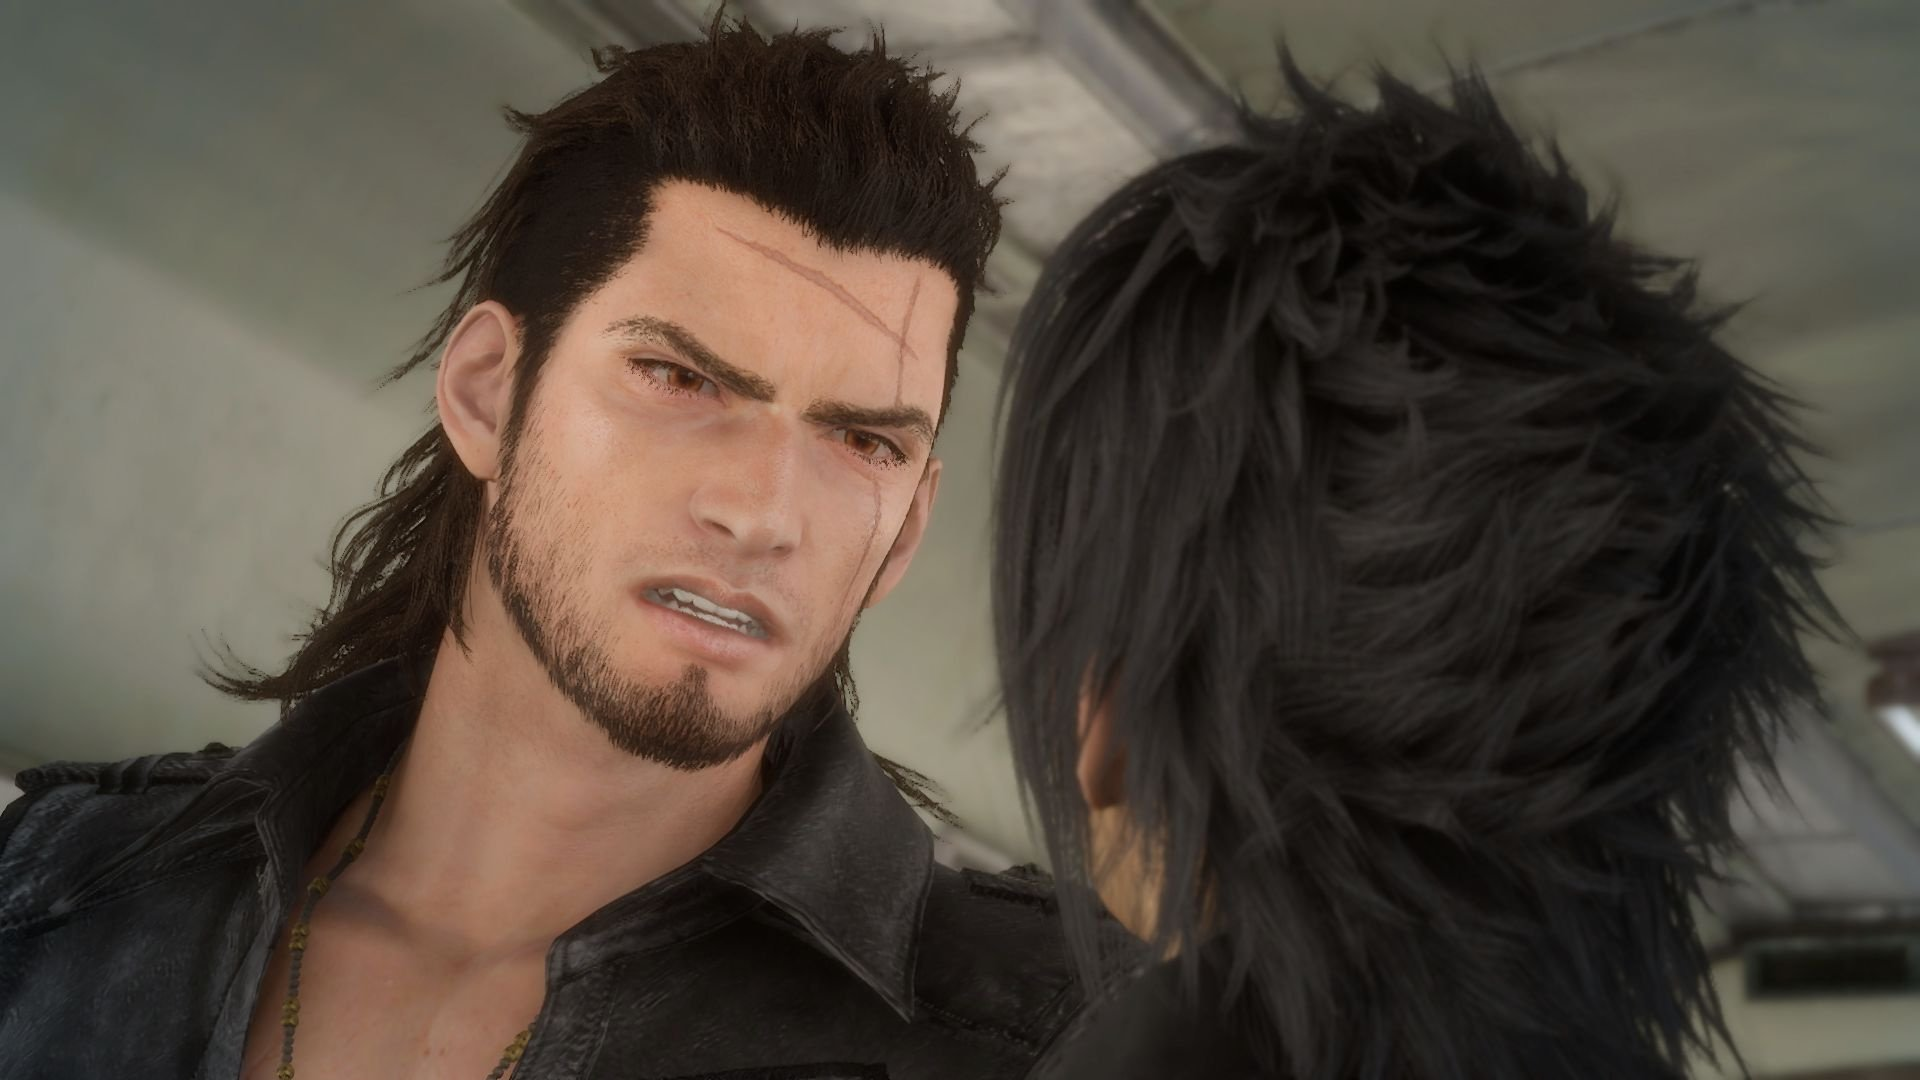 Final Fantasy XV Episode Gladiolus First DLC Trailer Released